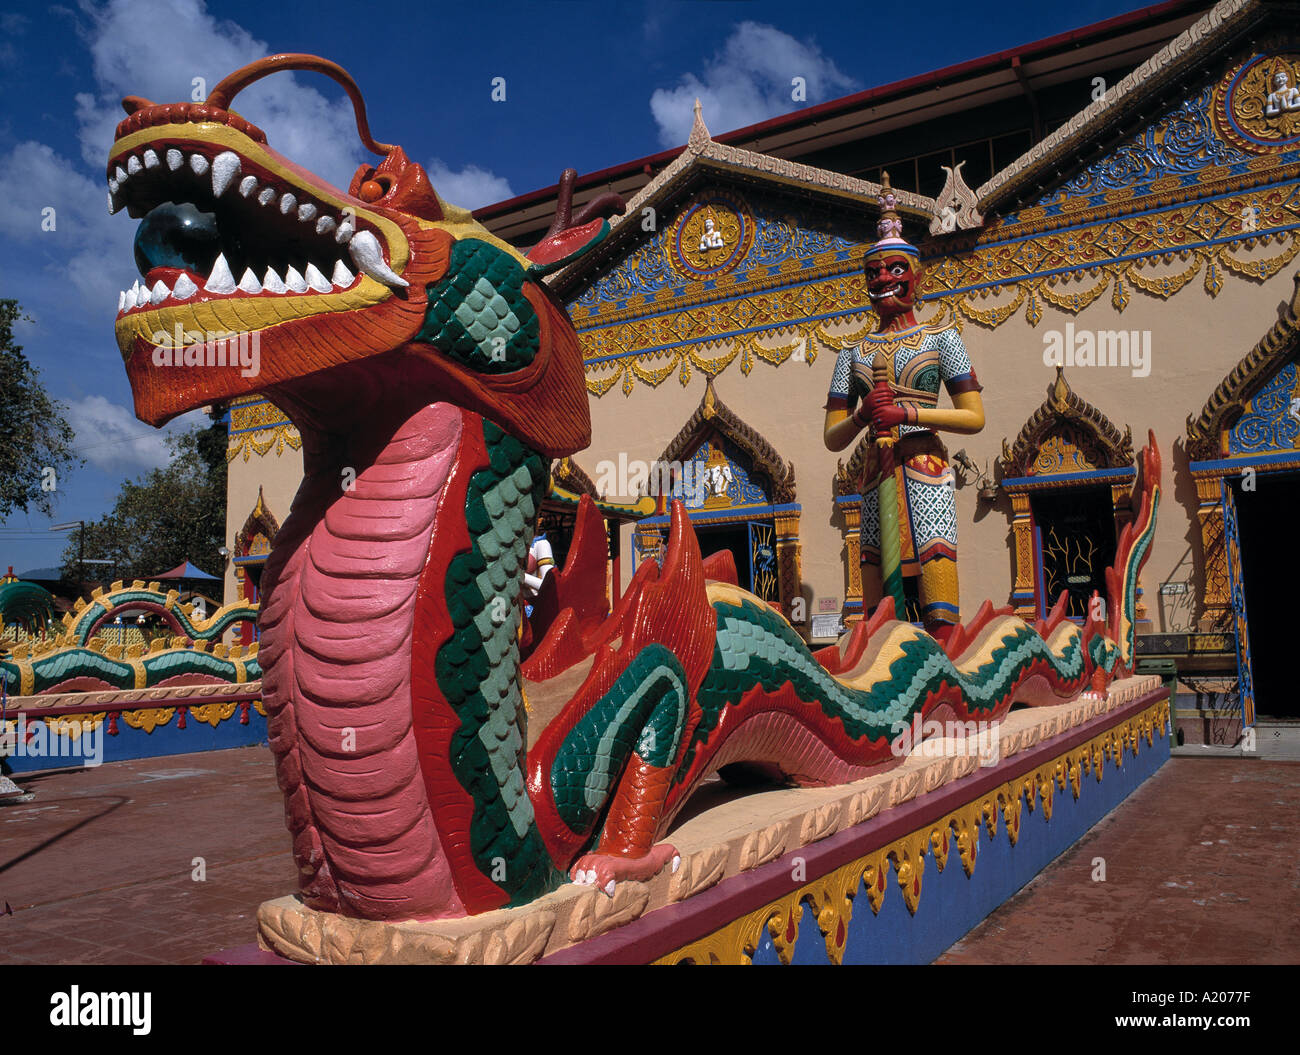 Thai Temple and snake decoration Georgetown - Stock Image